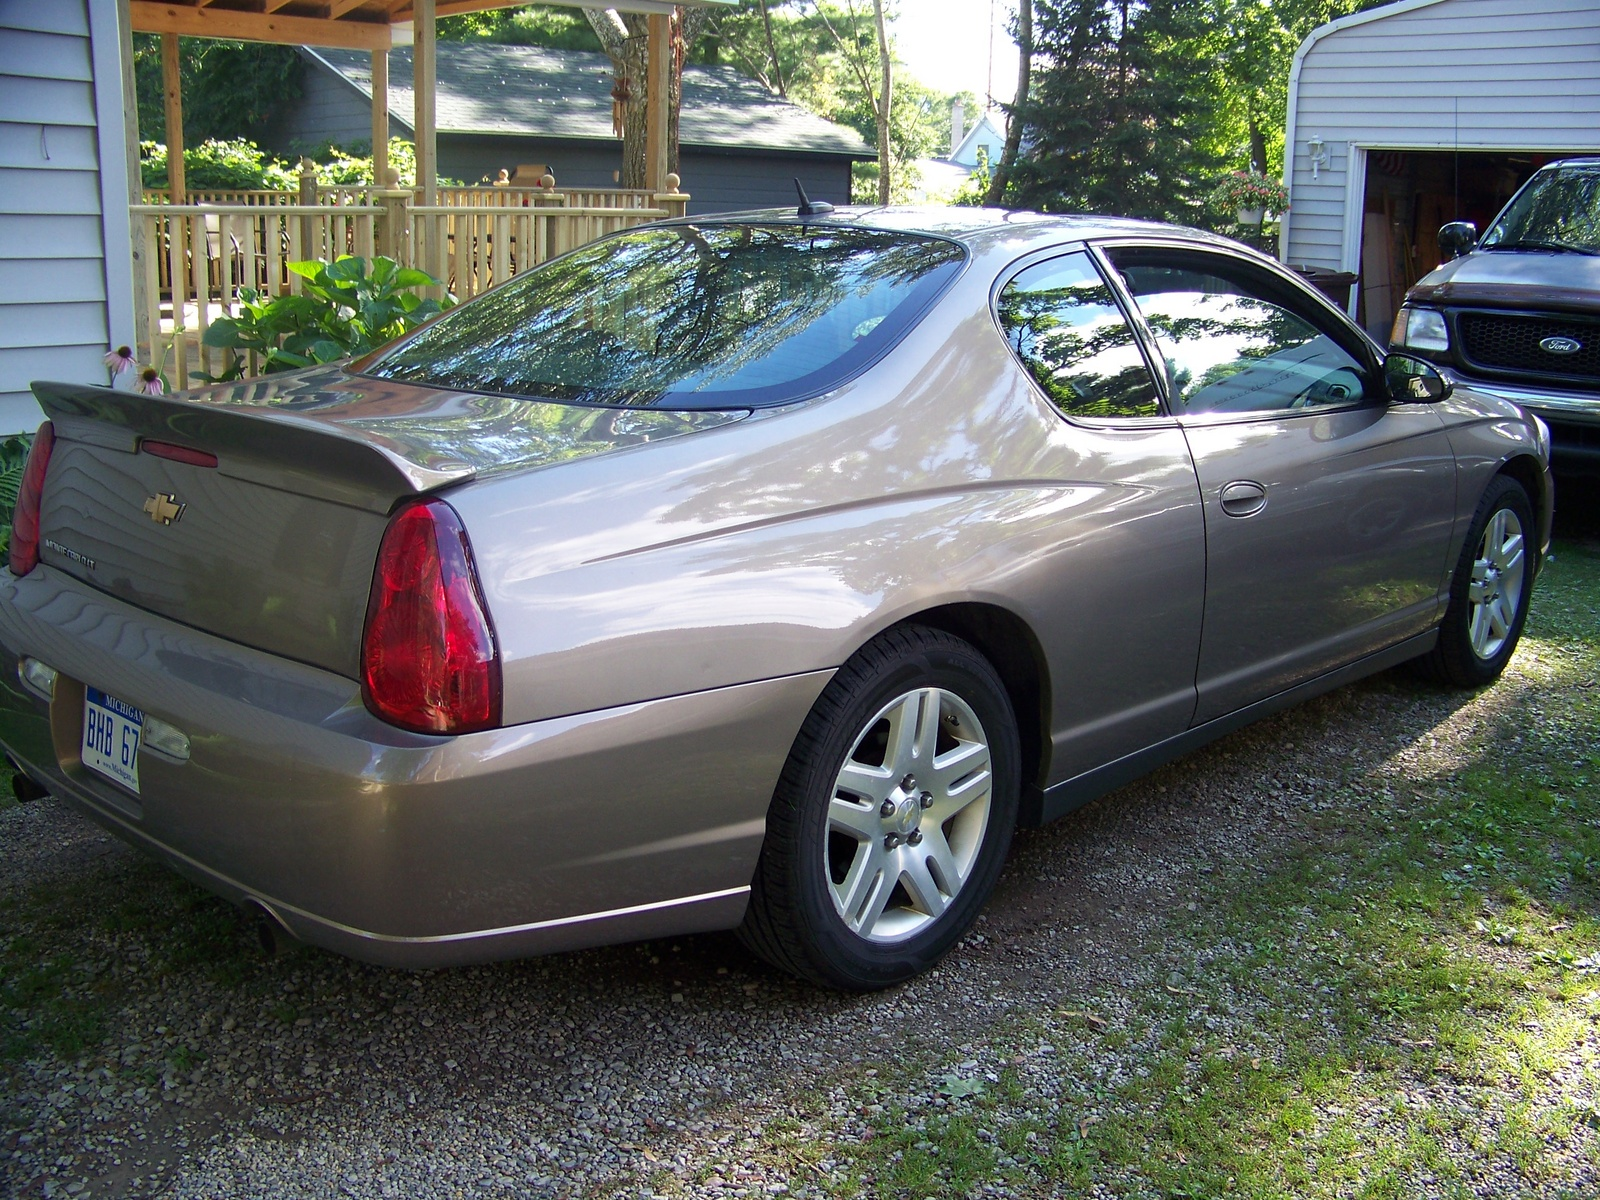 2006 Chevrolet Monte Carlo Lt Related Infomationspecifications 1981 El Camino Fuse Box Diagram Picture Of 39l Exterior